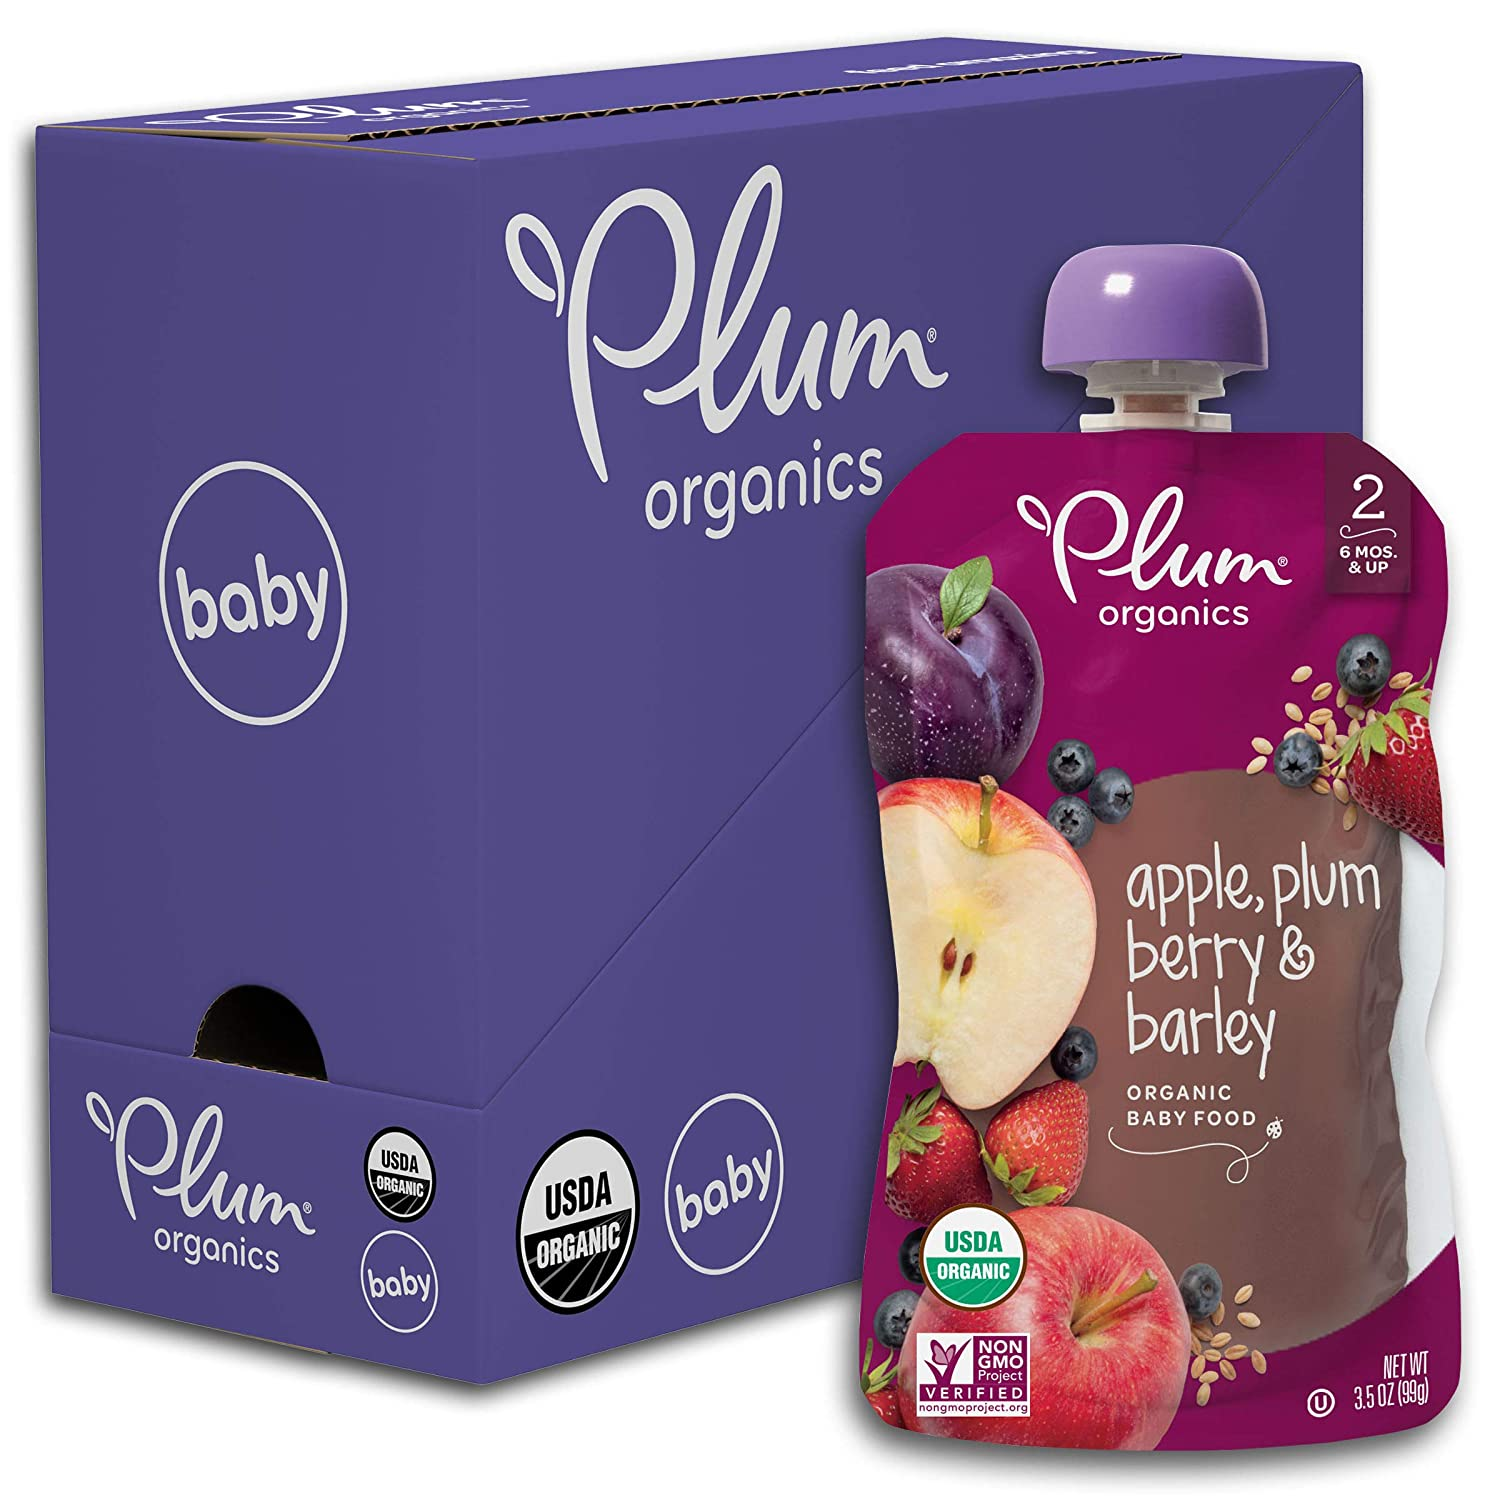 Plum Organics Stage 2 Organic Baby Food, Apple, Plum, Berry & Barley, 3.5 Ounce Pouch (Pack of 6)